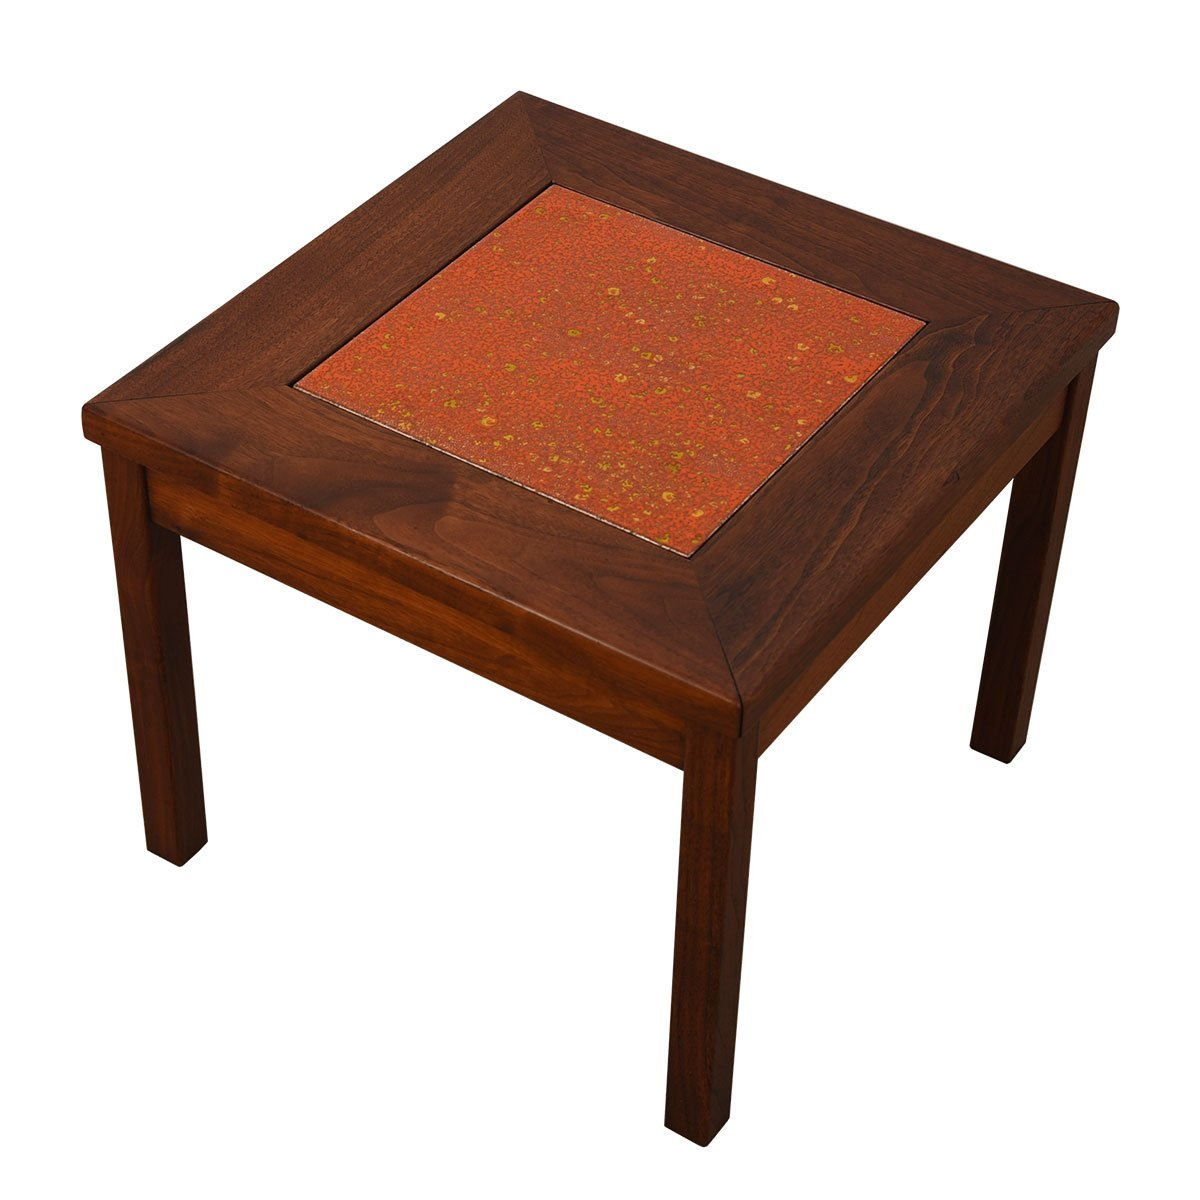 Two Walnut Accent Tables w/ a Cloisonné Inset, Blue & Orange